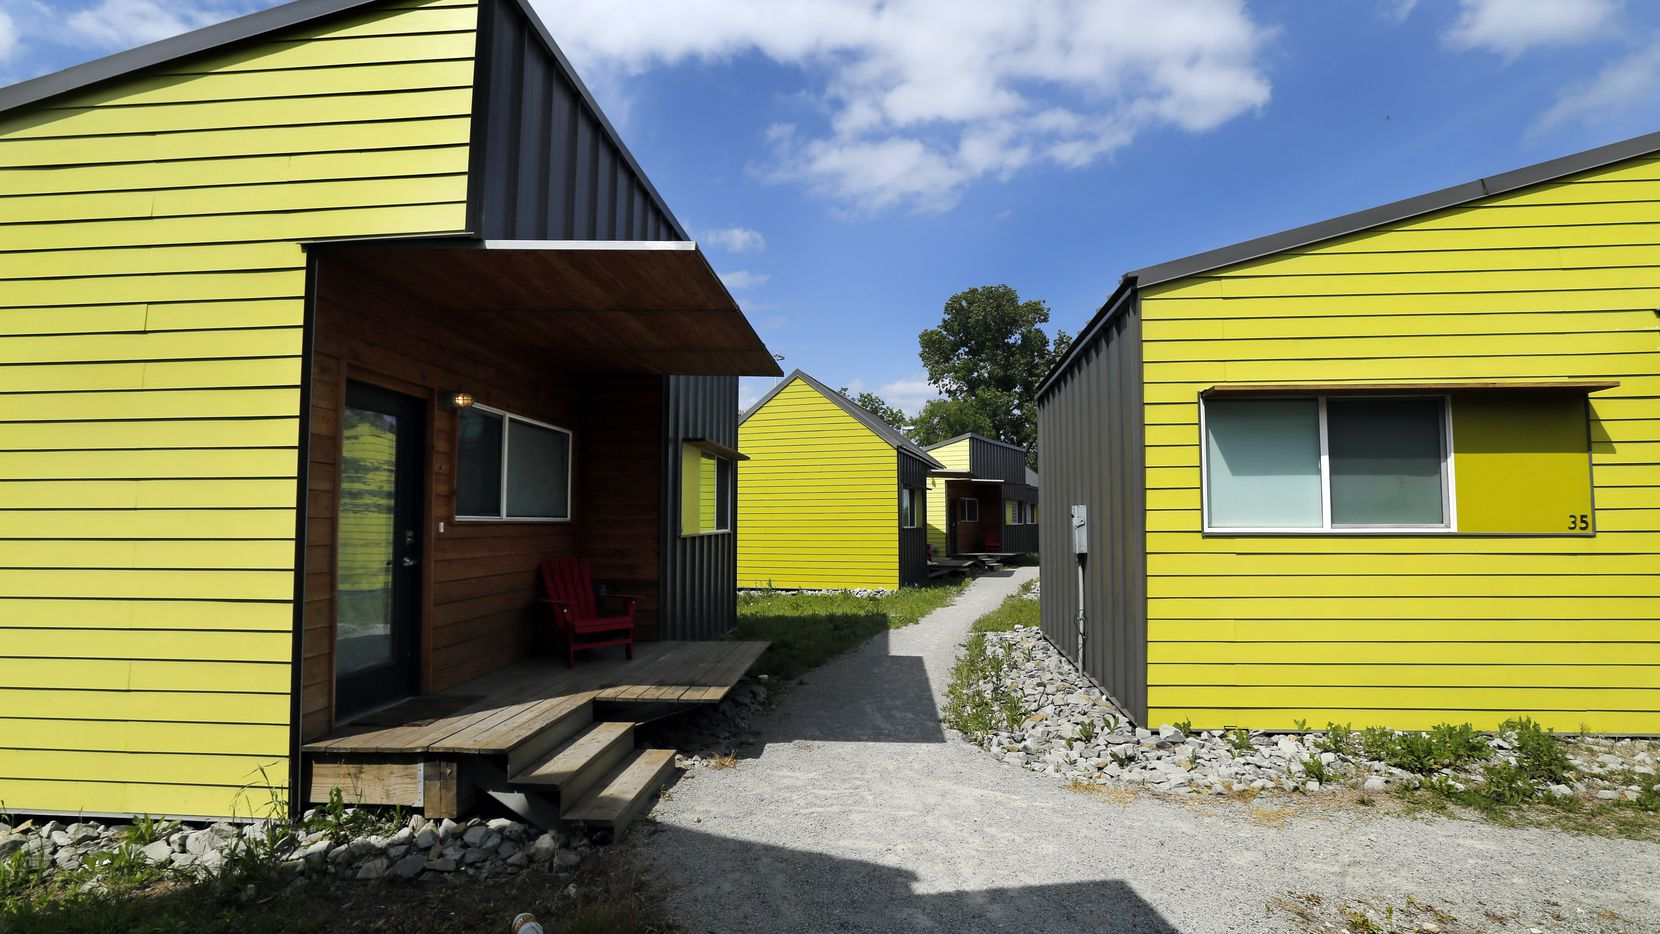 The Cottages at Hickory Crossing have brightly colored units with pathways between them. The units are designed by BC Workshop.